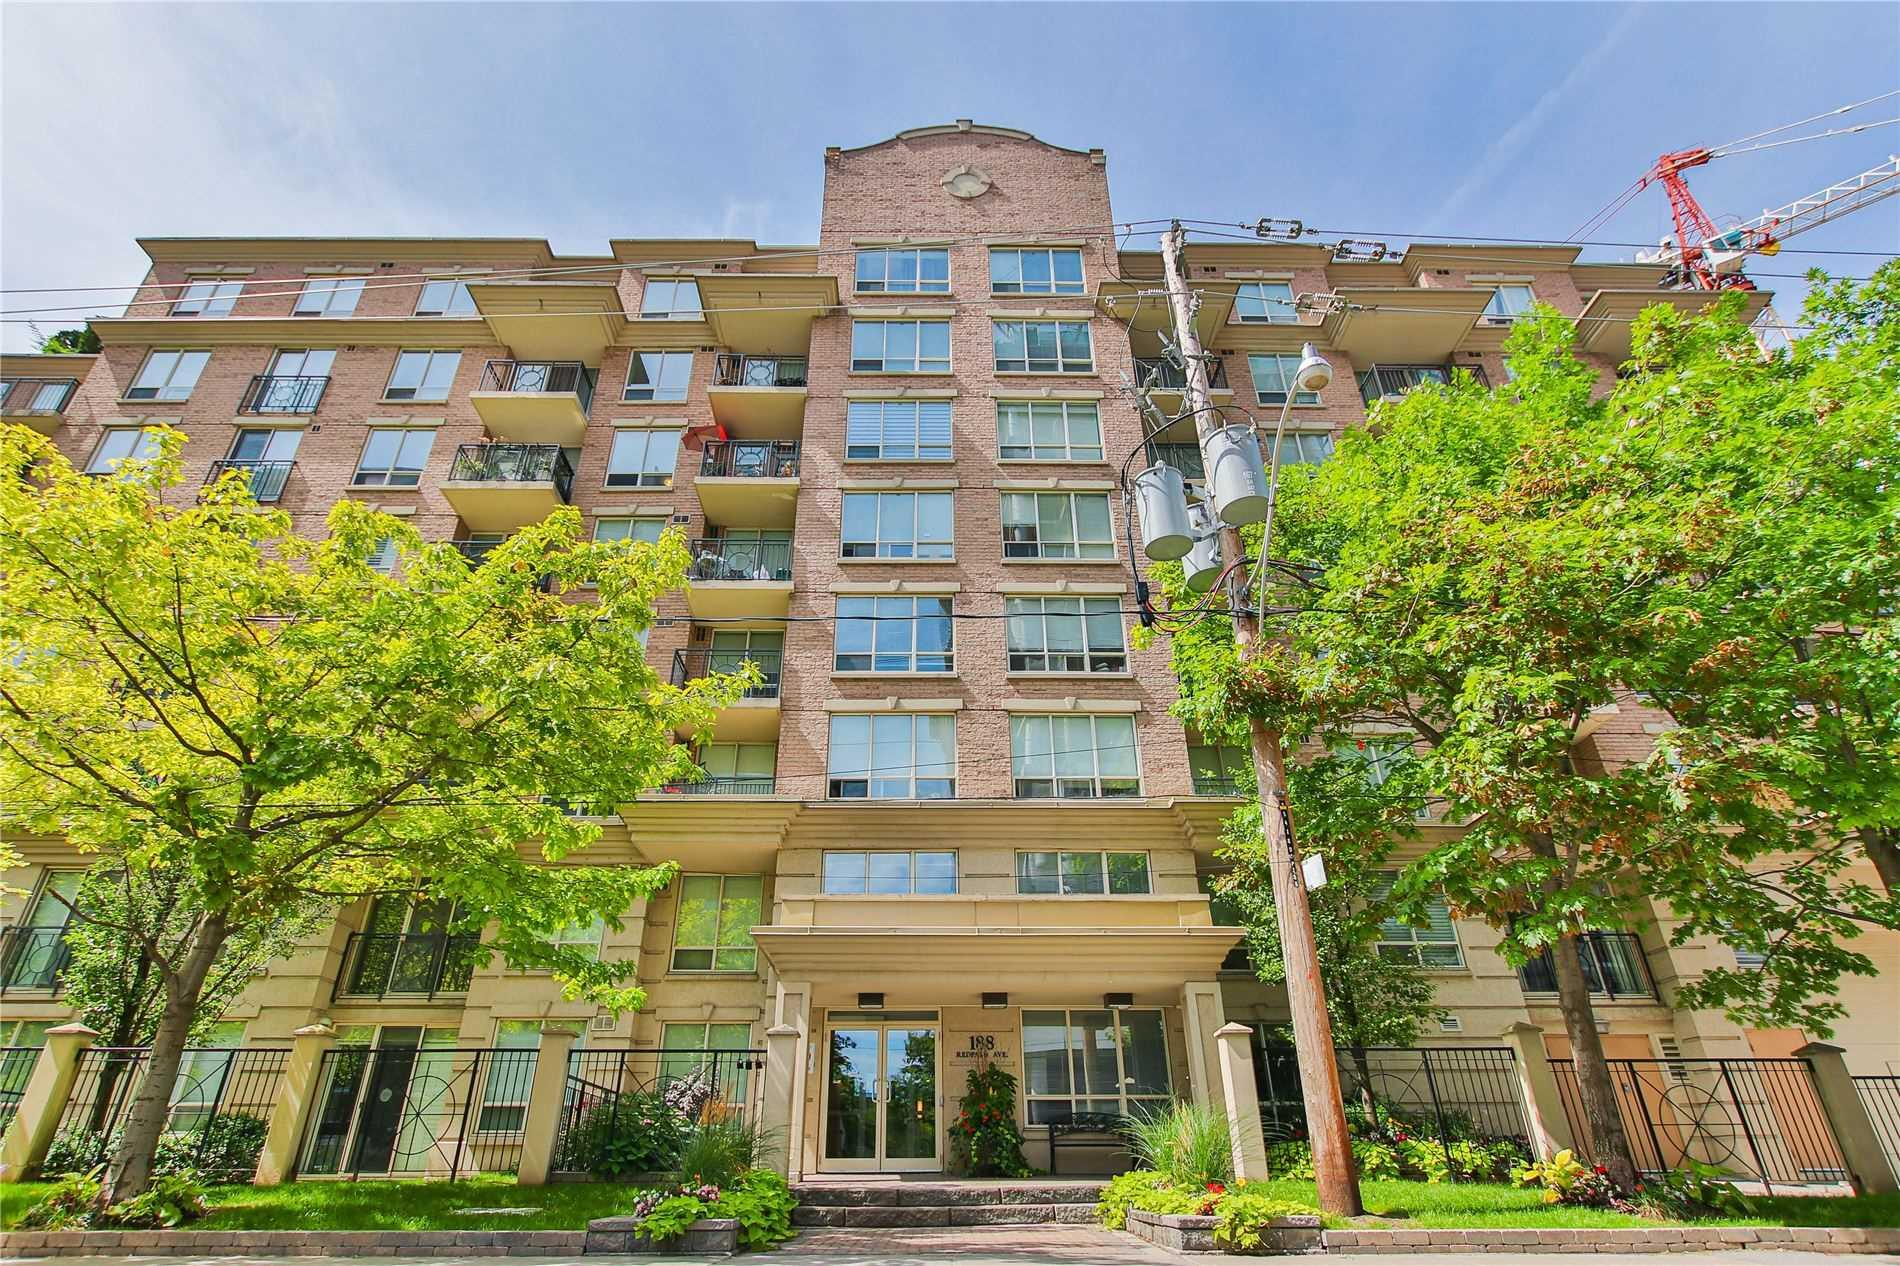 Peachy Condos Apartments For Sale In Toronto Search Mls Zoocasa Home Interior And Landscaping Mentranervesignezvosmurscom